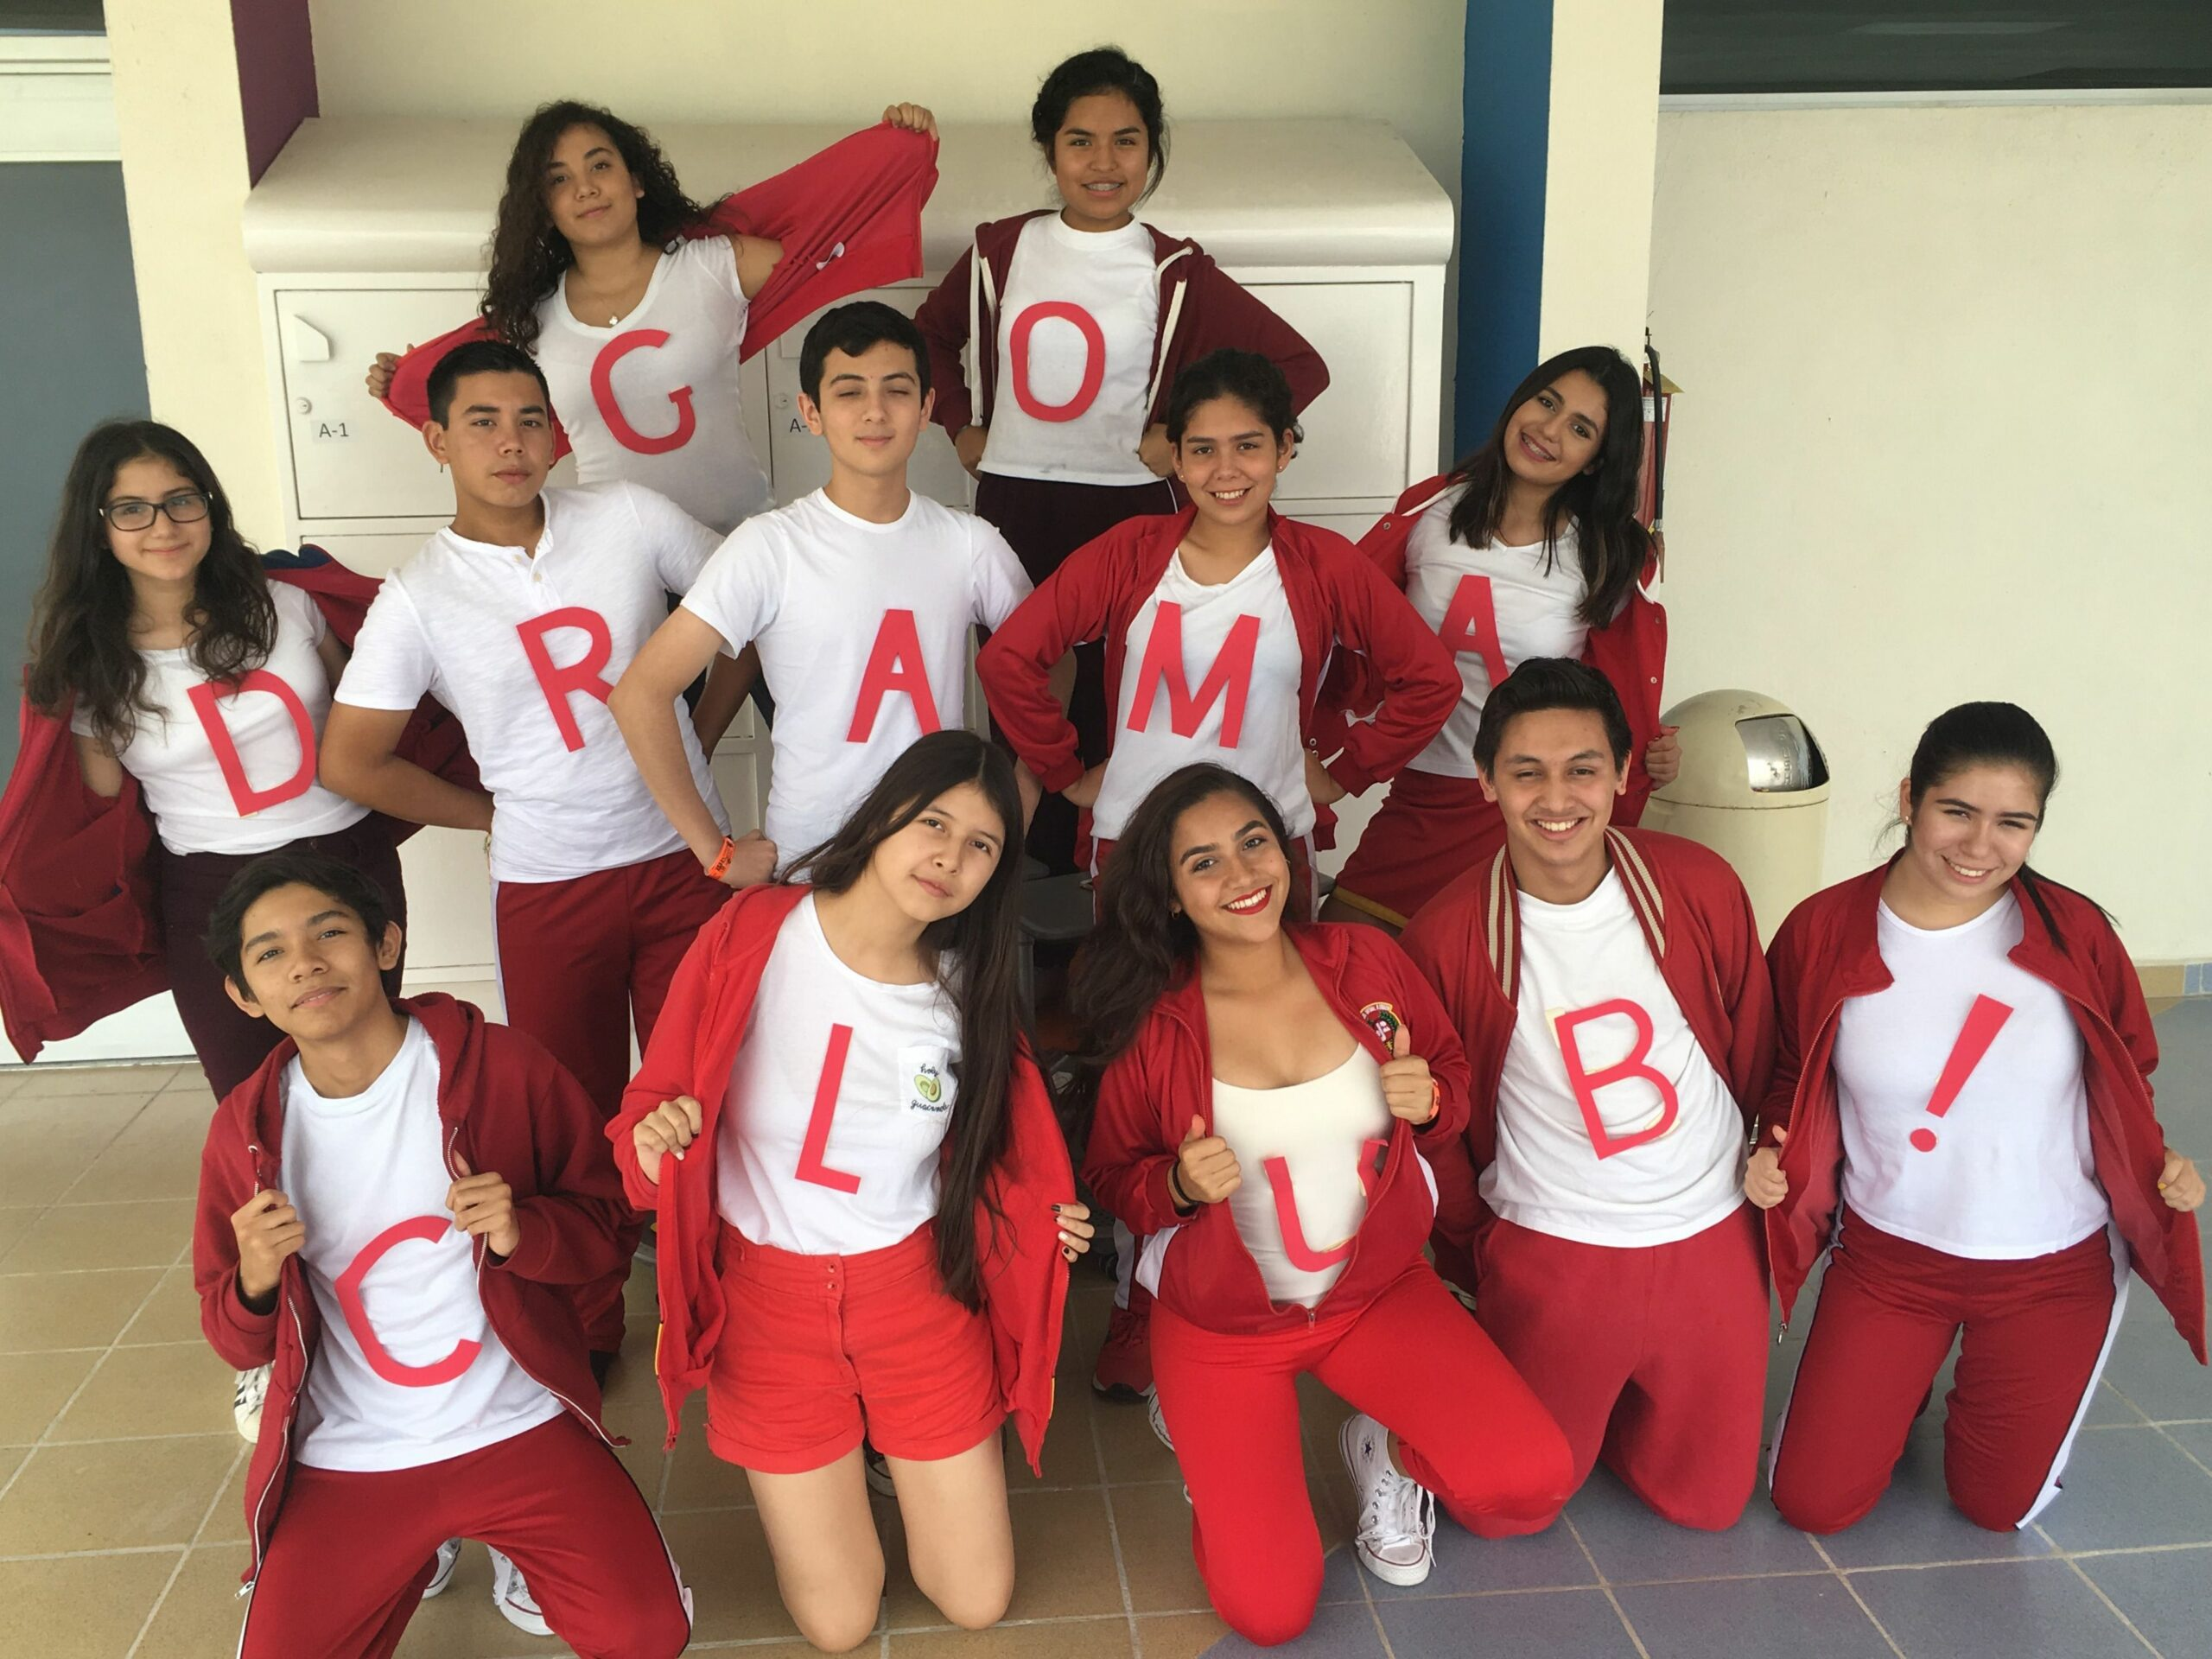 High school musical group costume | High school musical costumes ..